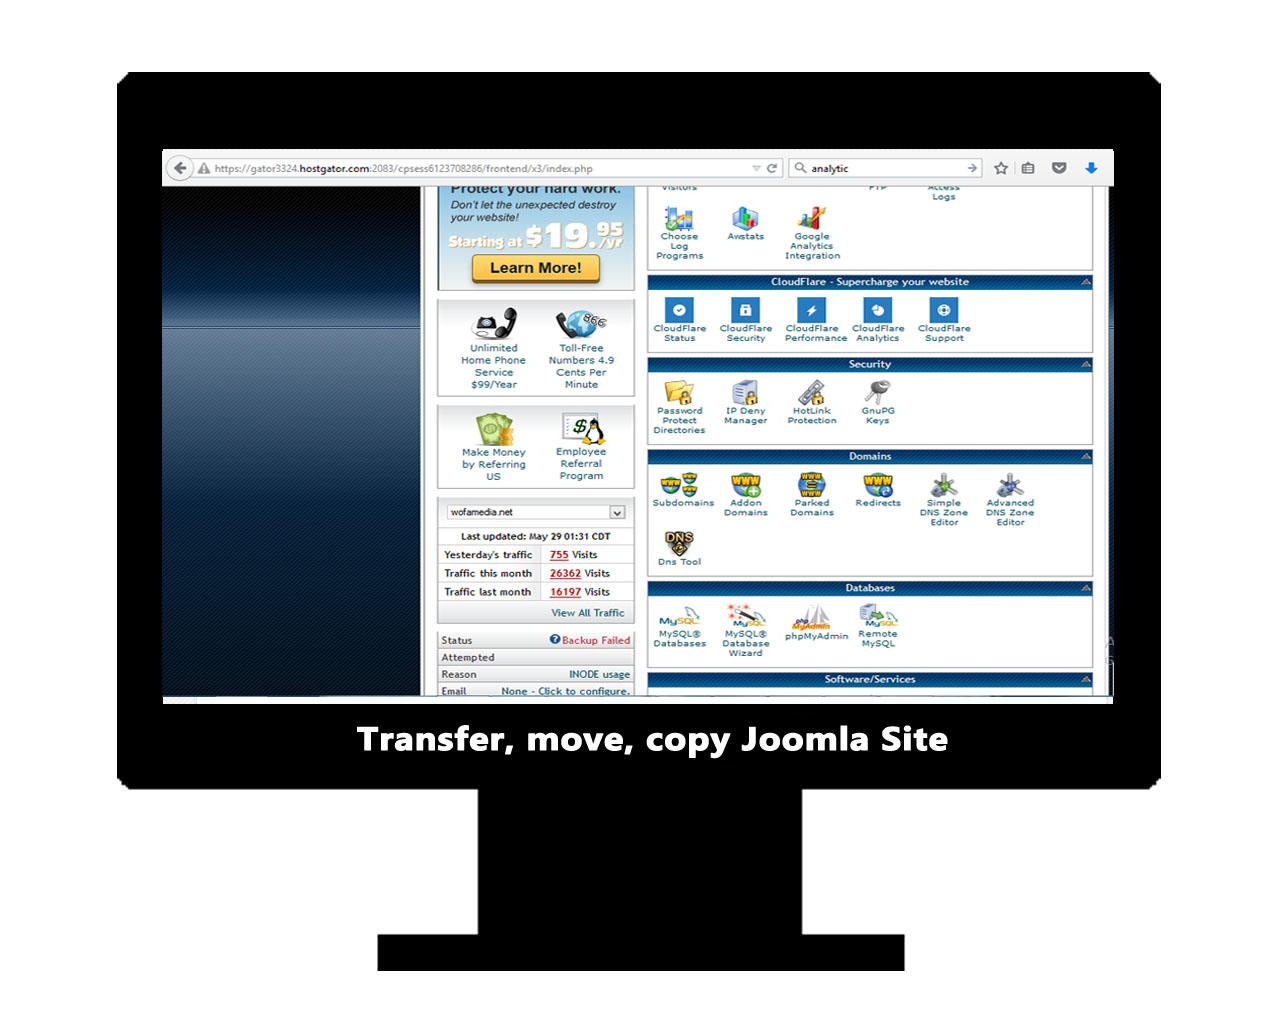 Joomla Migration / Move / Transfer / Copy / Cloning from One Server to Another by AritonangWofa - 79893